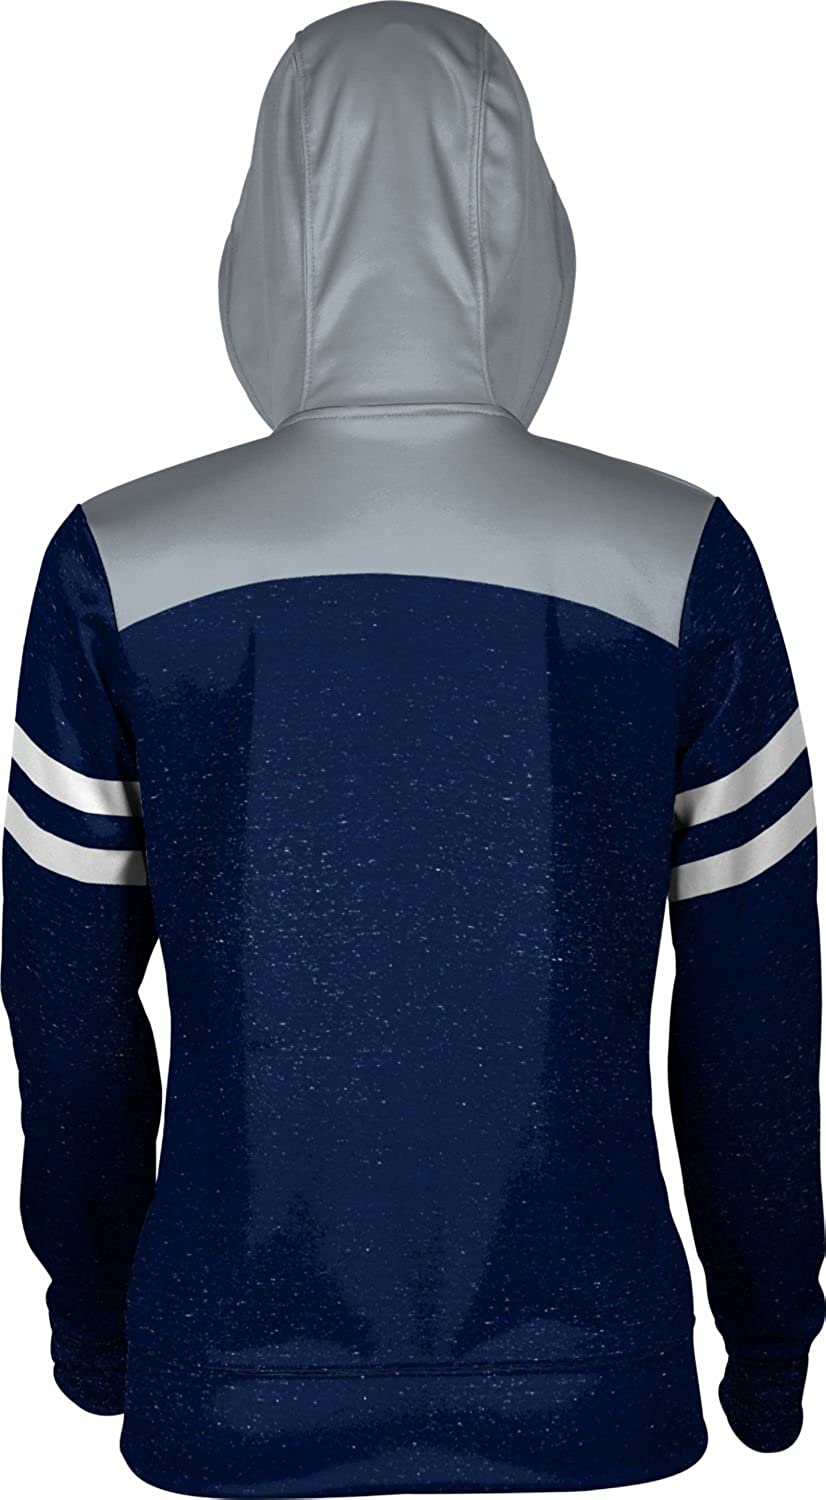 School Spirit Sweatshirt Monmouth University Girls Zipper Hoodie Game Time